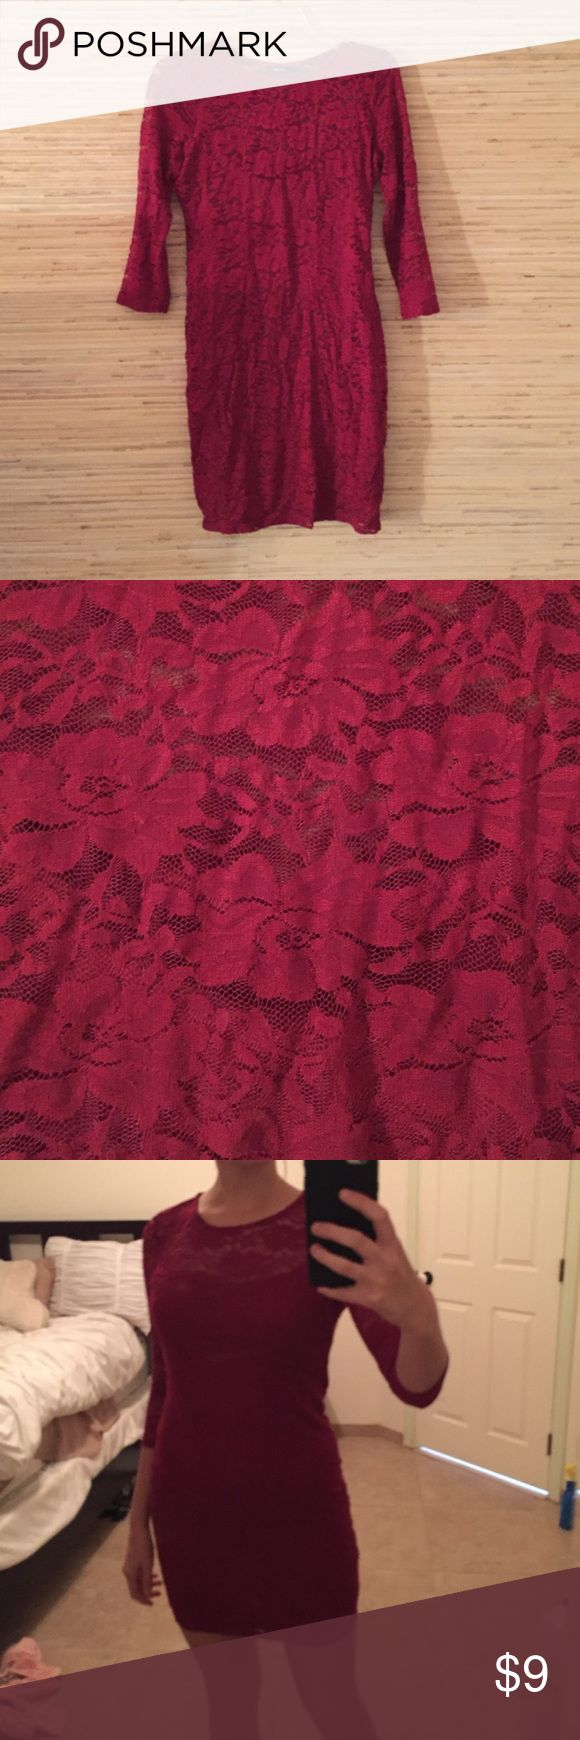 Red lace half sleeve dress Cute clubbing by dress, super cute. Wore it once. Dresses Mini